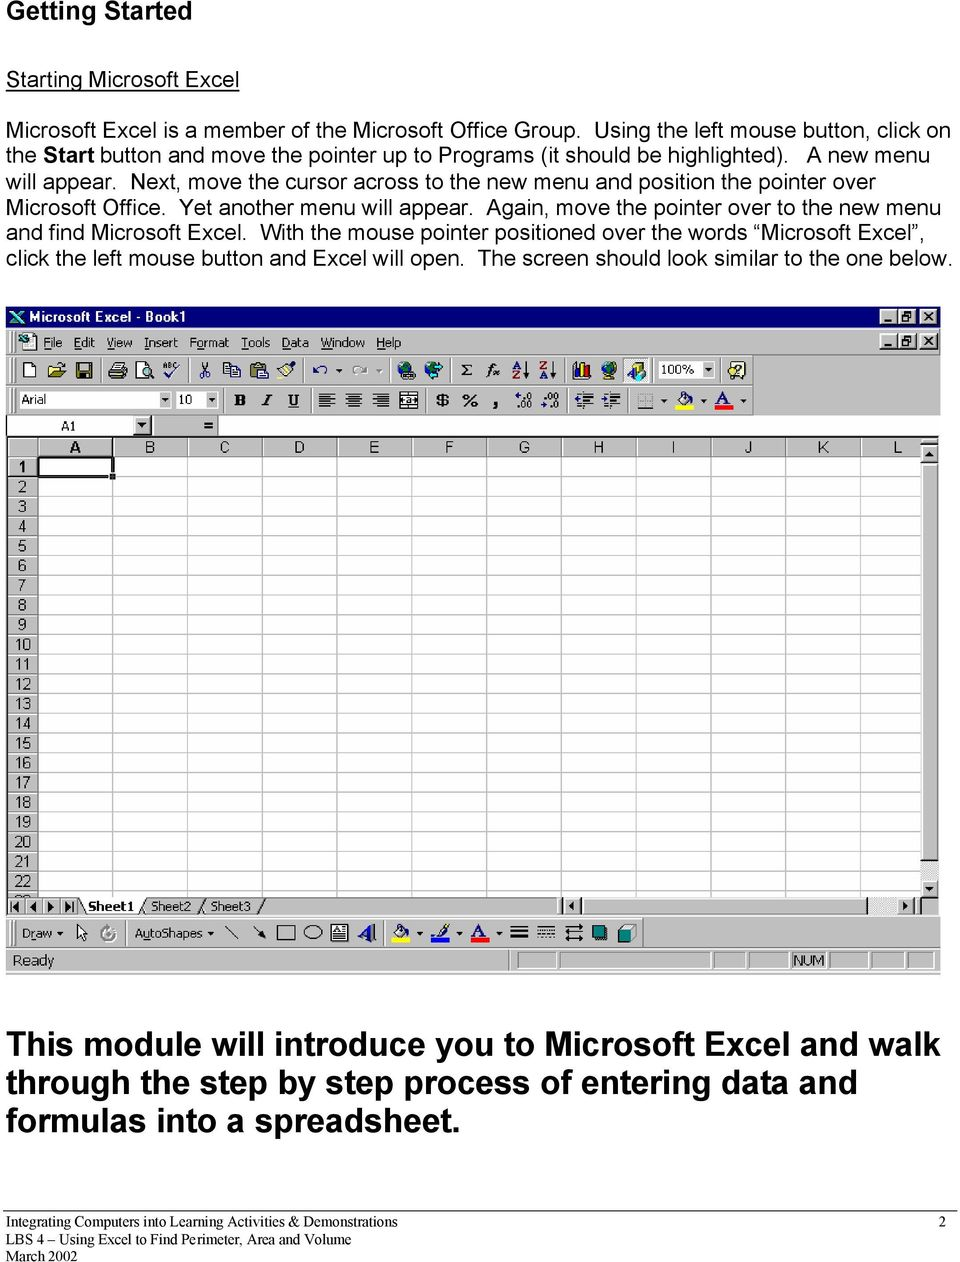 Next, move the cursor across to the new menu and position the pointer over Microsoft Office. Yet another menu will appear. Again, move the pointer over to the new menu and find Microsoft Excel.